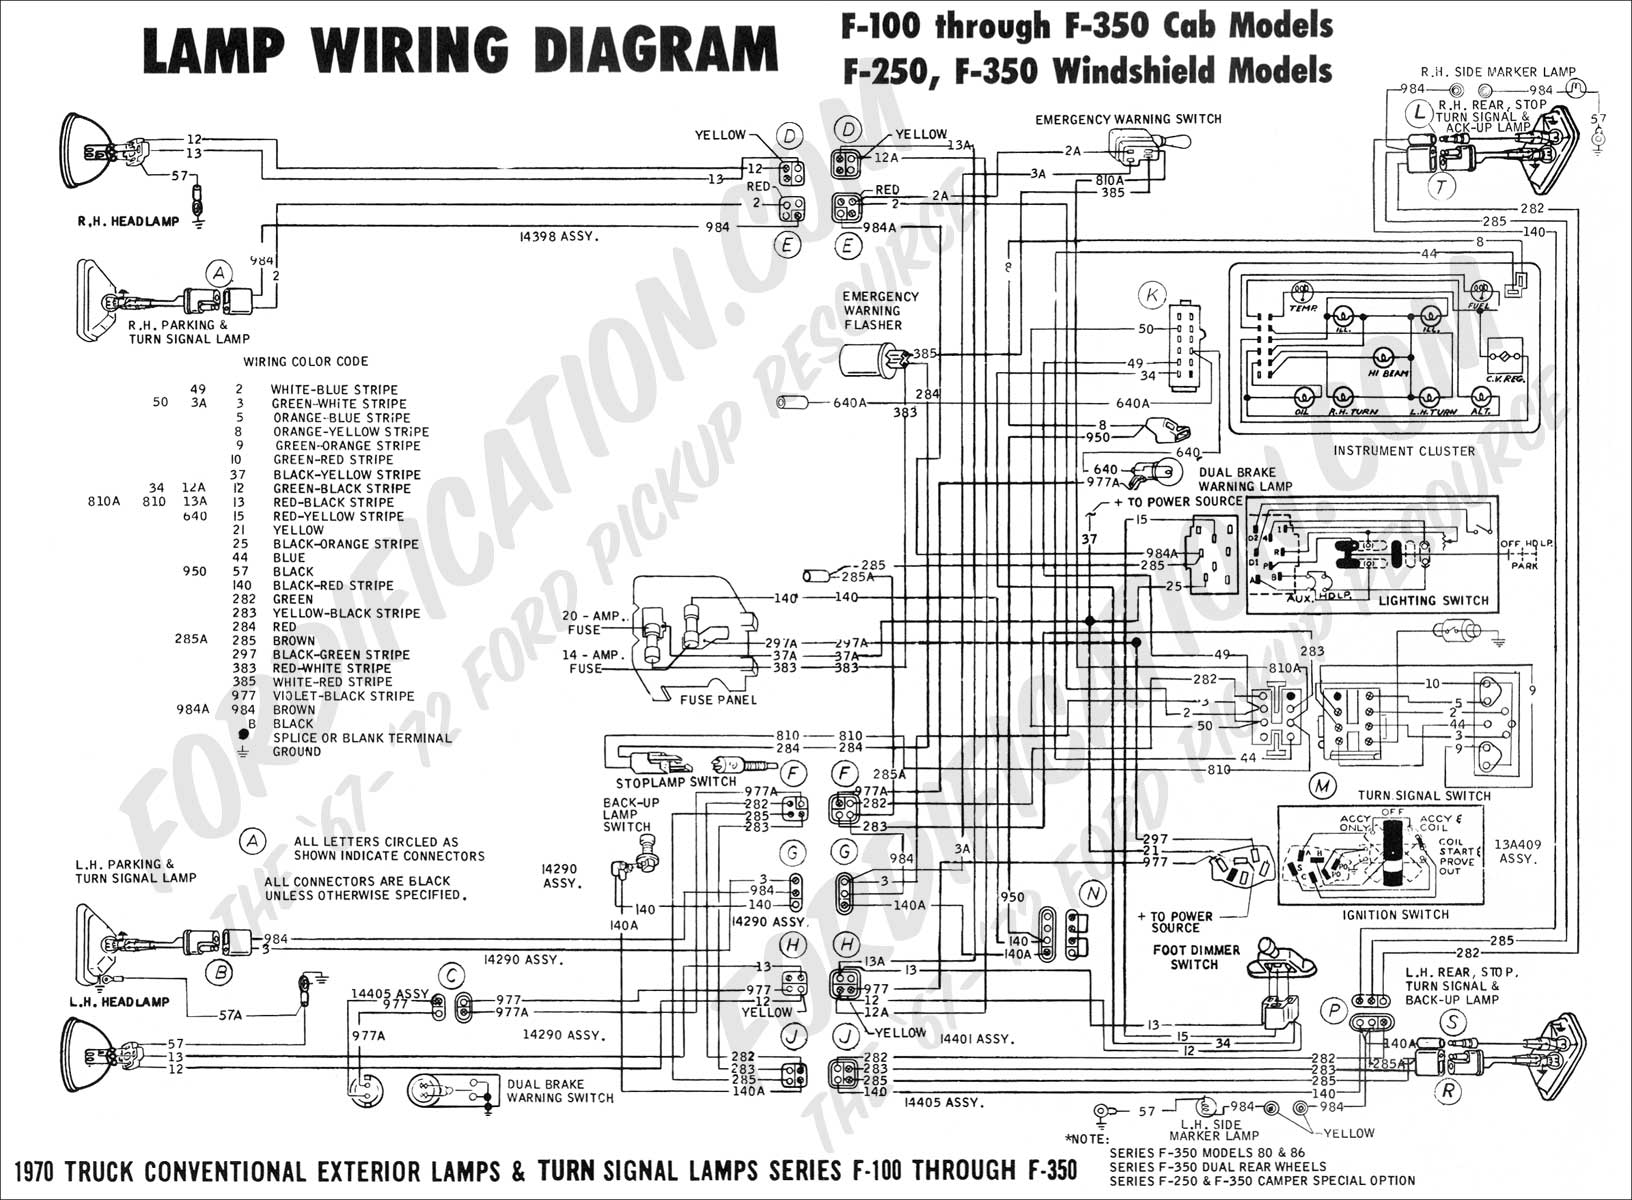 1979 Ford F100 Fuse Box 1977 F150 Diagram Wiring Diagrams Simple Everything 2001 F 150